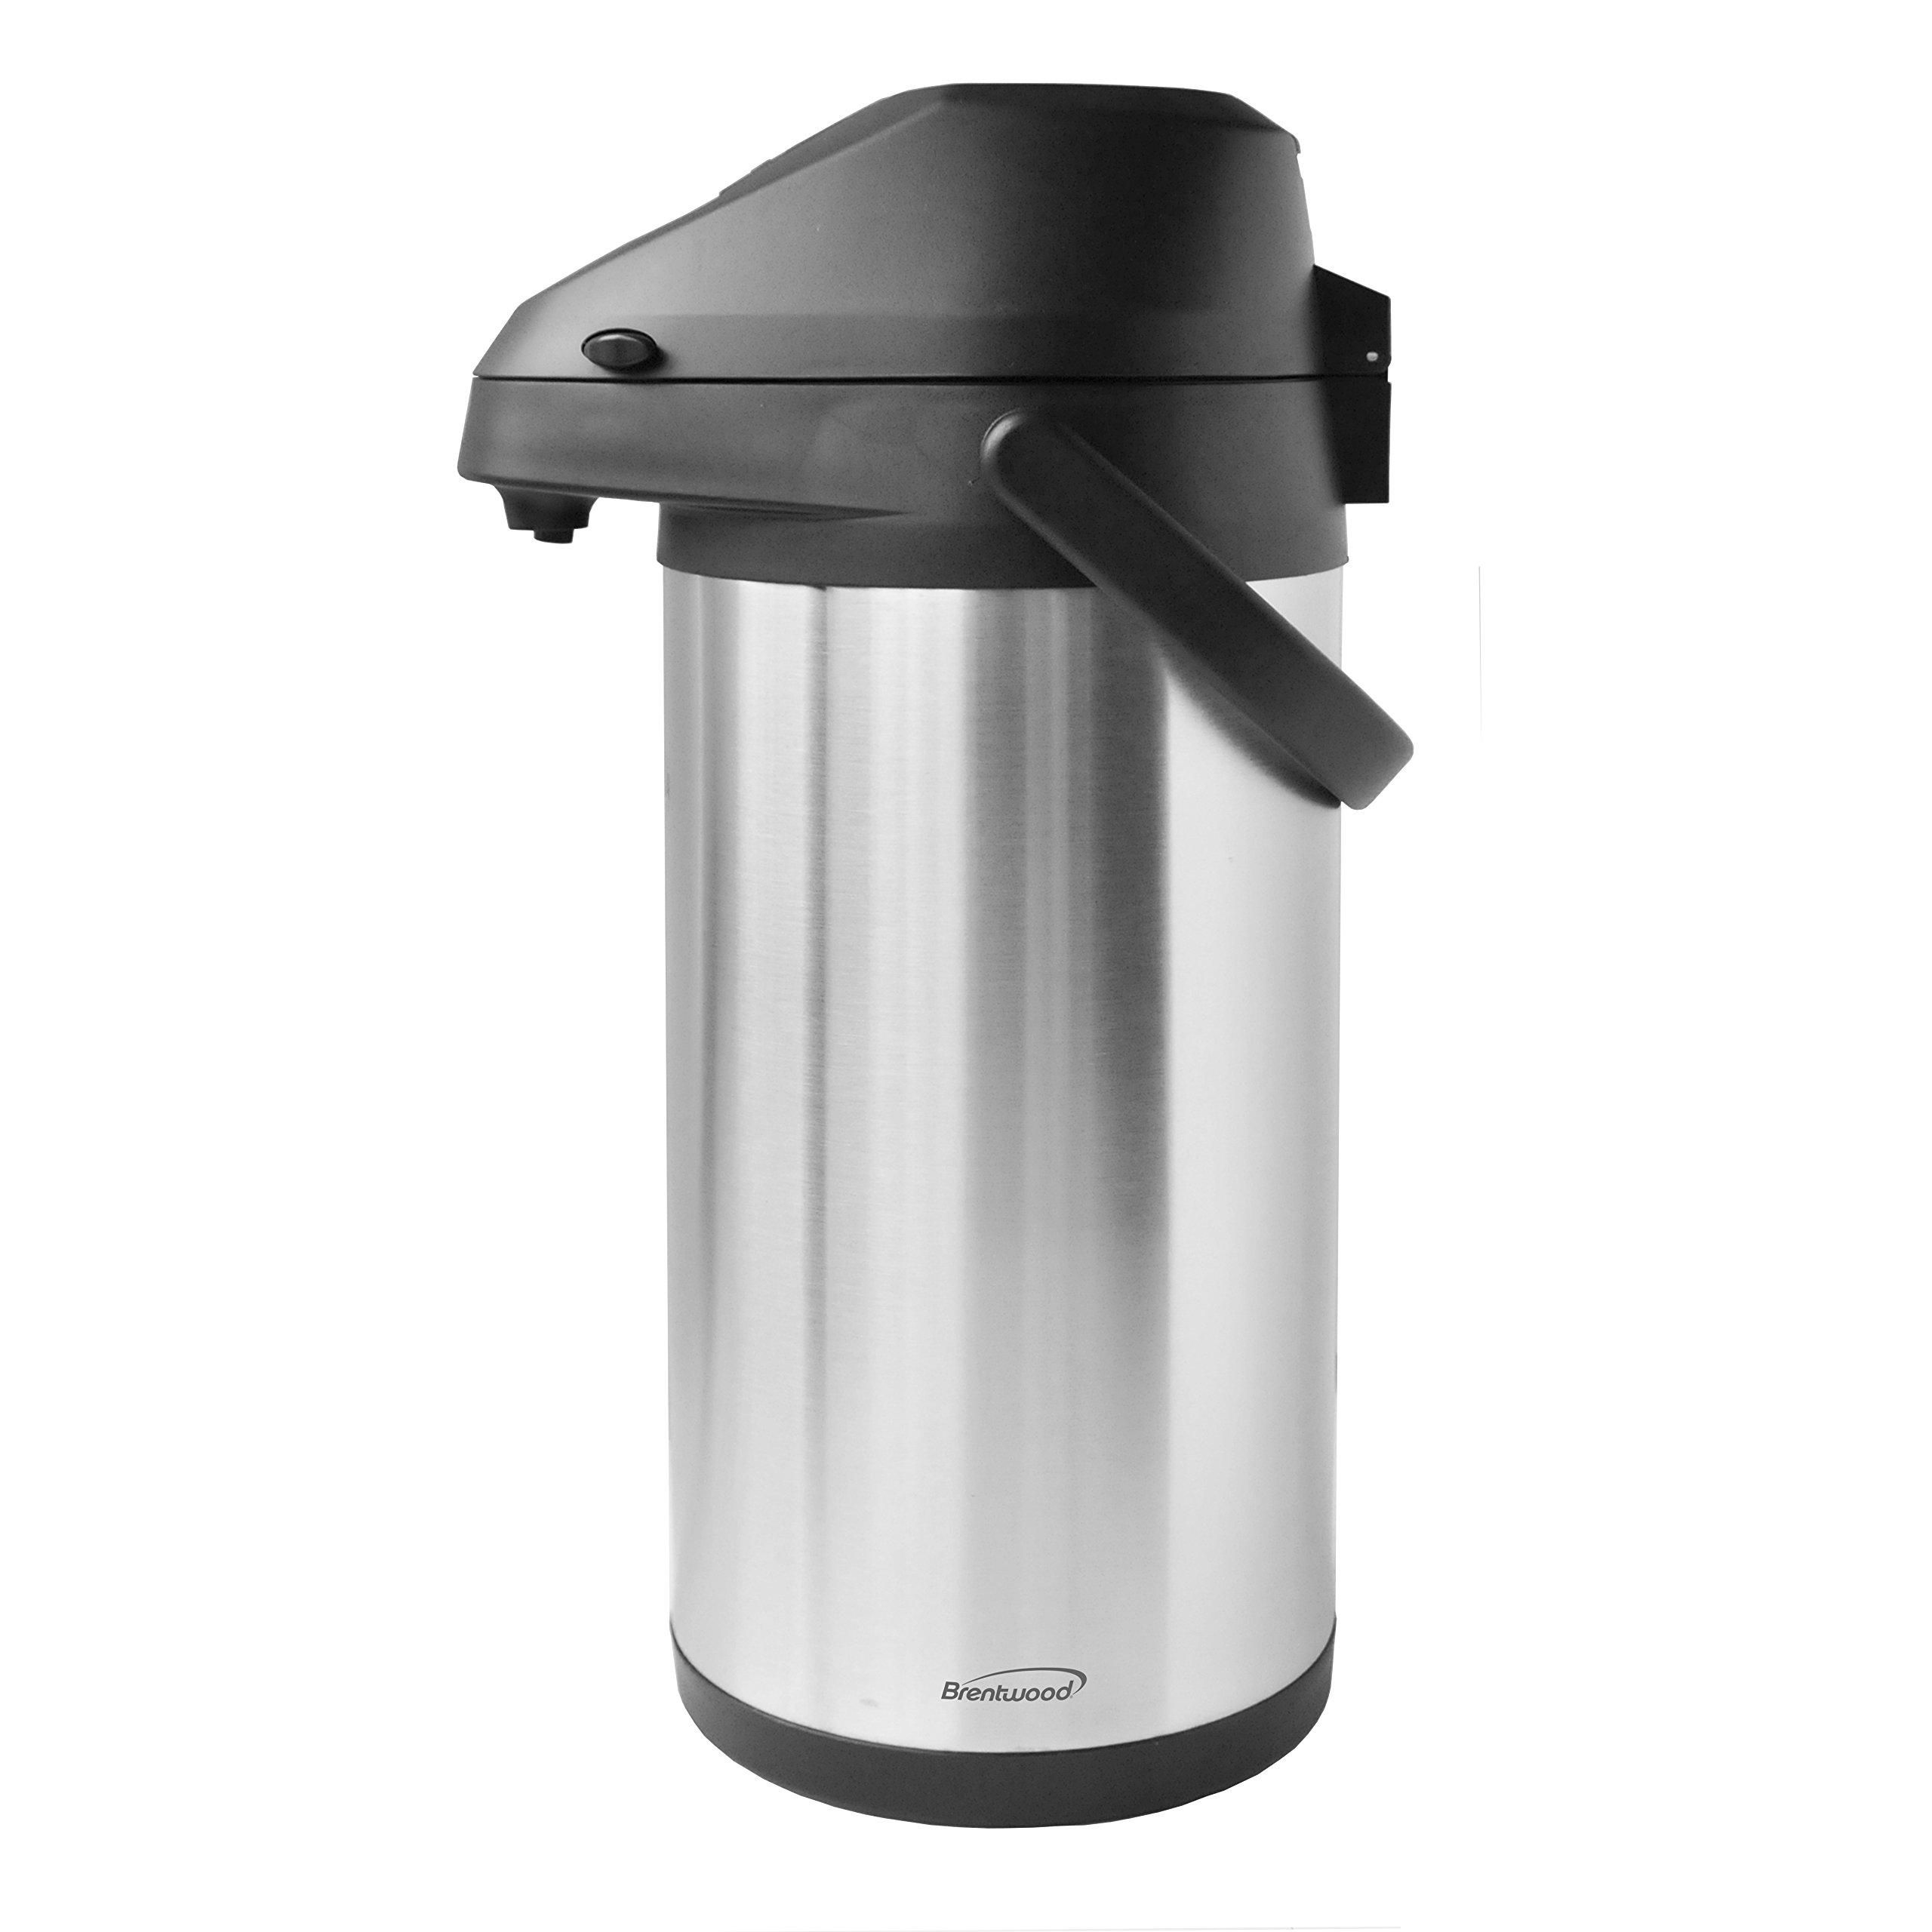 Brentwood CTSA-3500 3.5-Liter Airpot Hot & Cold Drink Dispenser, Stainless Steel by Brentwood